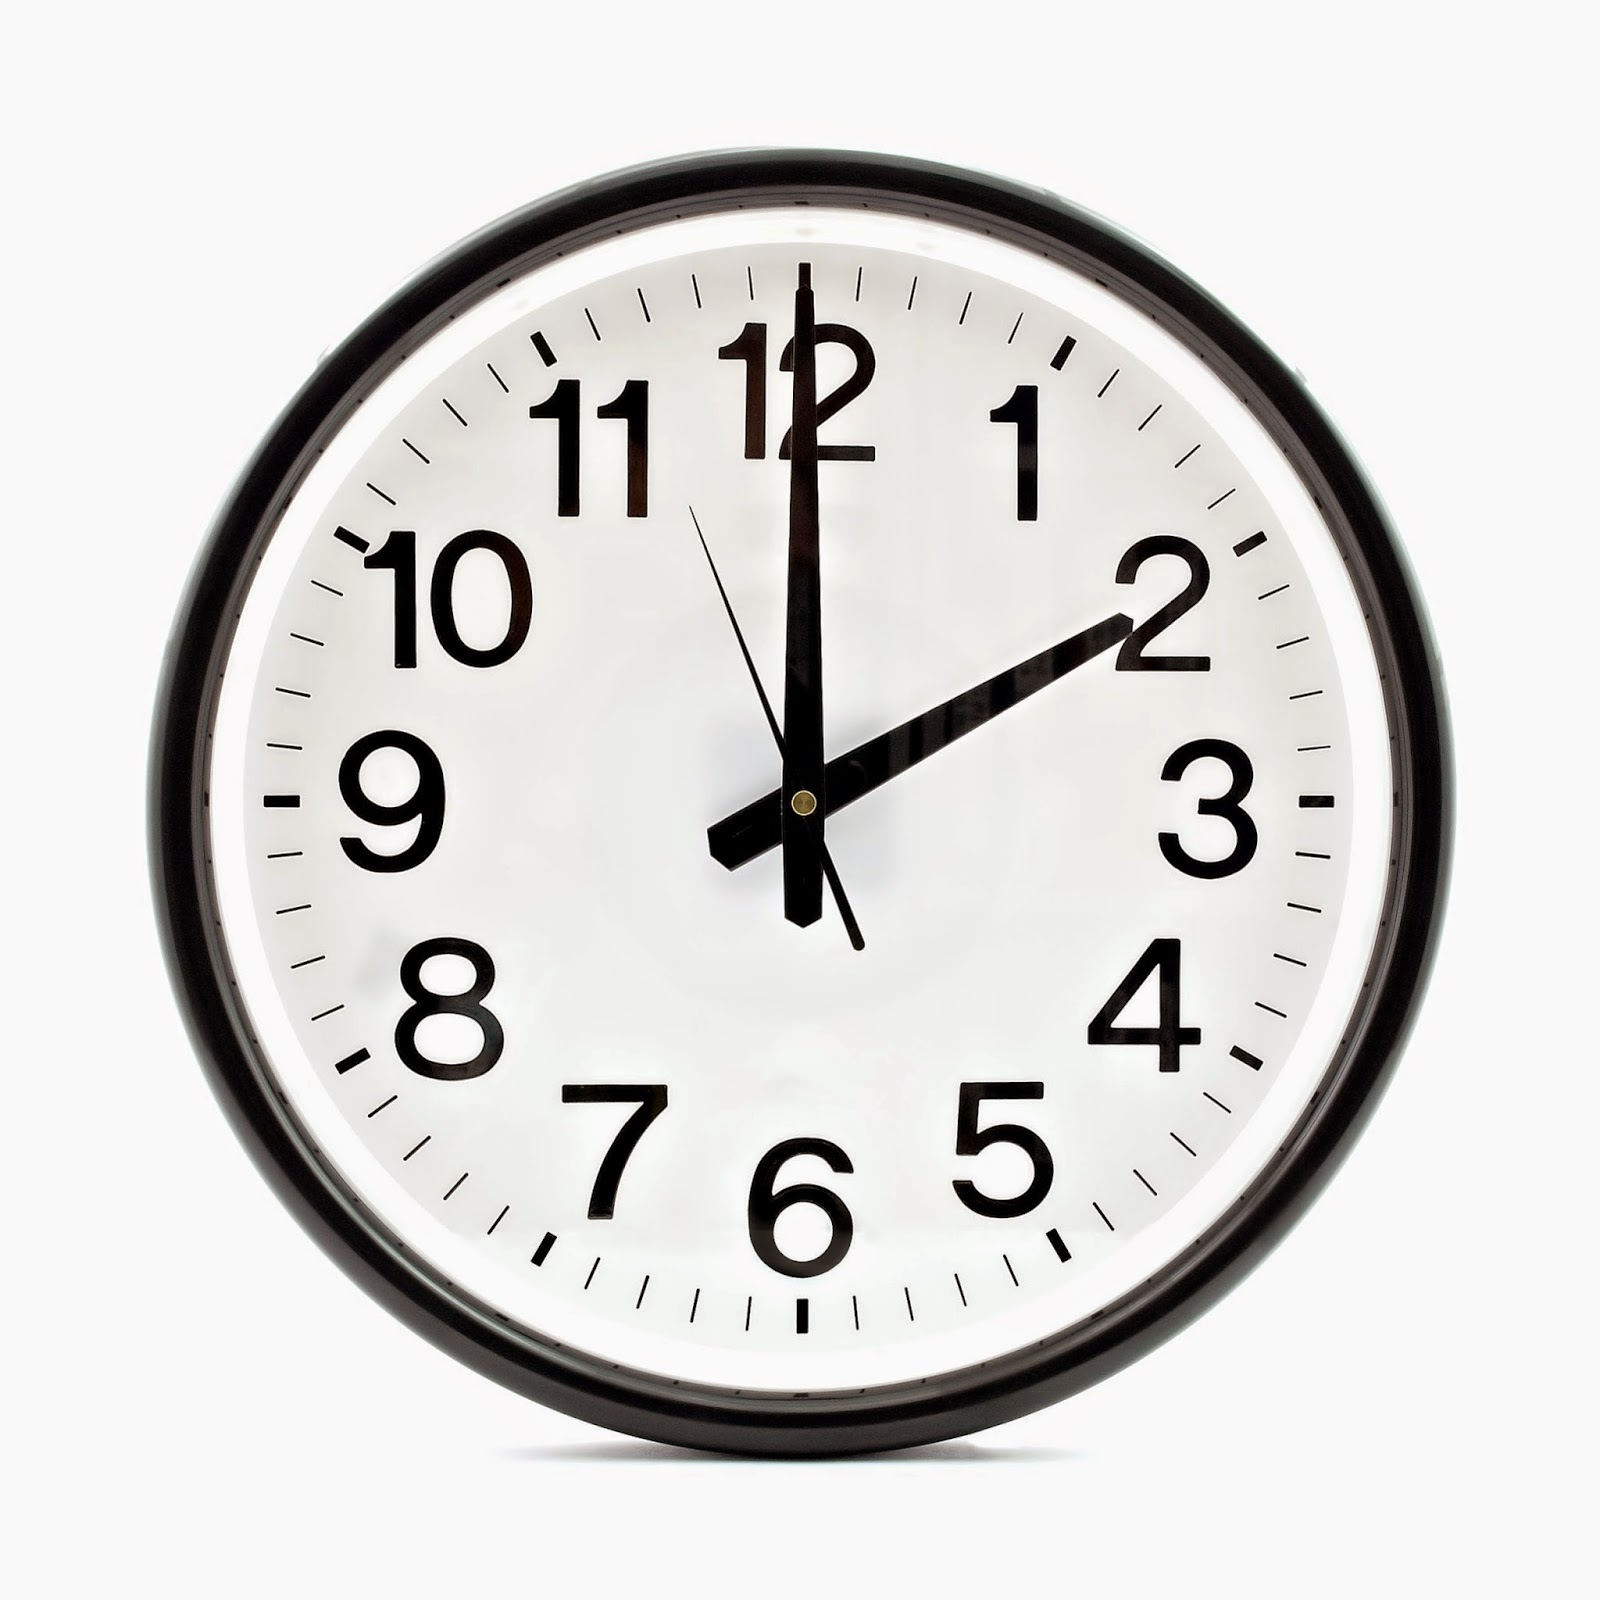 Free Picture Of A Clock Download Free Clip Art Free Clip